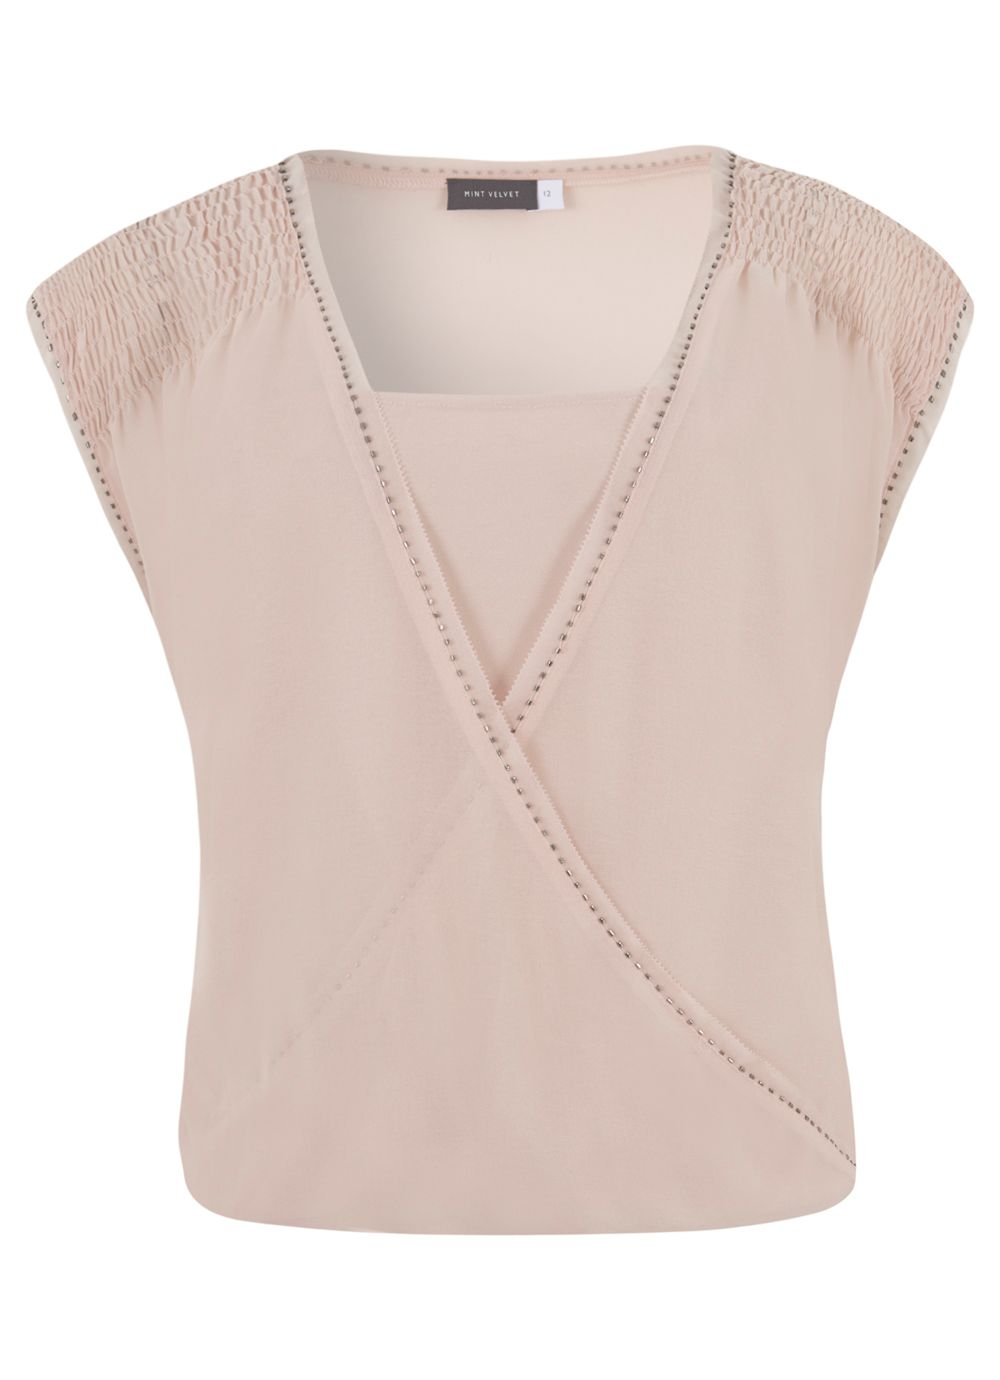 Nude Beaded Wrap Top